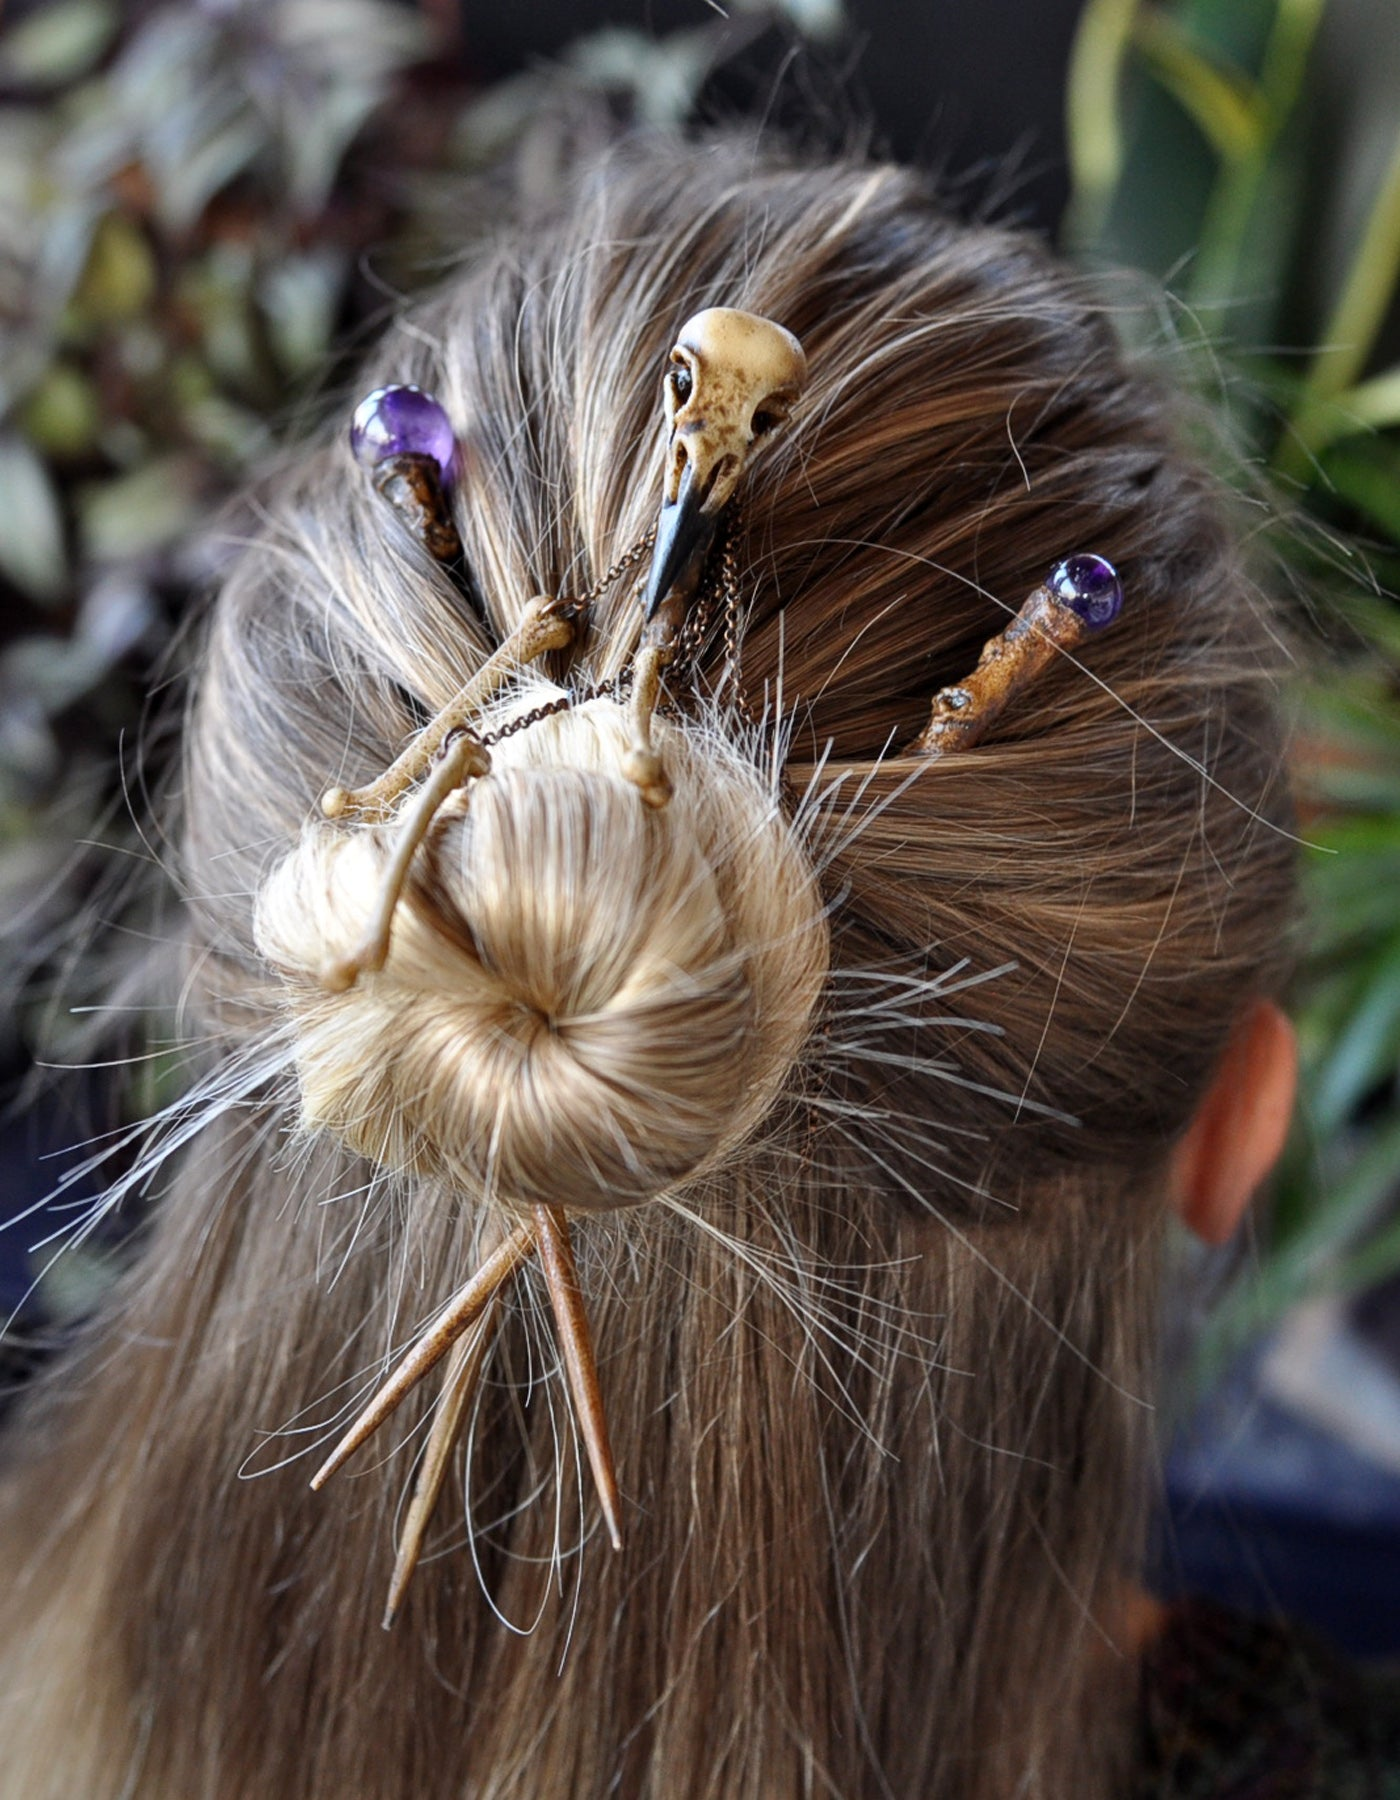 Realistic Crow Skull and Bones Hair Sticks, Realistic Tree Branch Hair Wand, Amethyst Beads Hair Accessories, Gothic Style Wedding